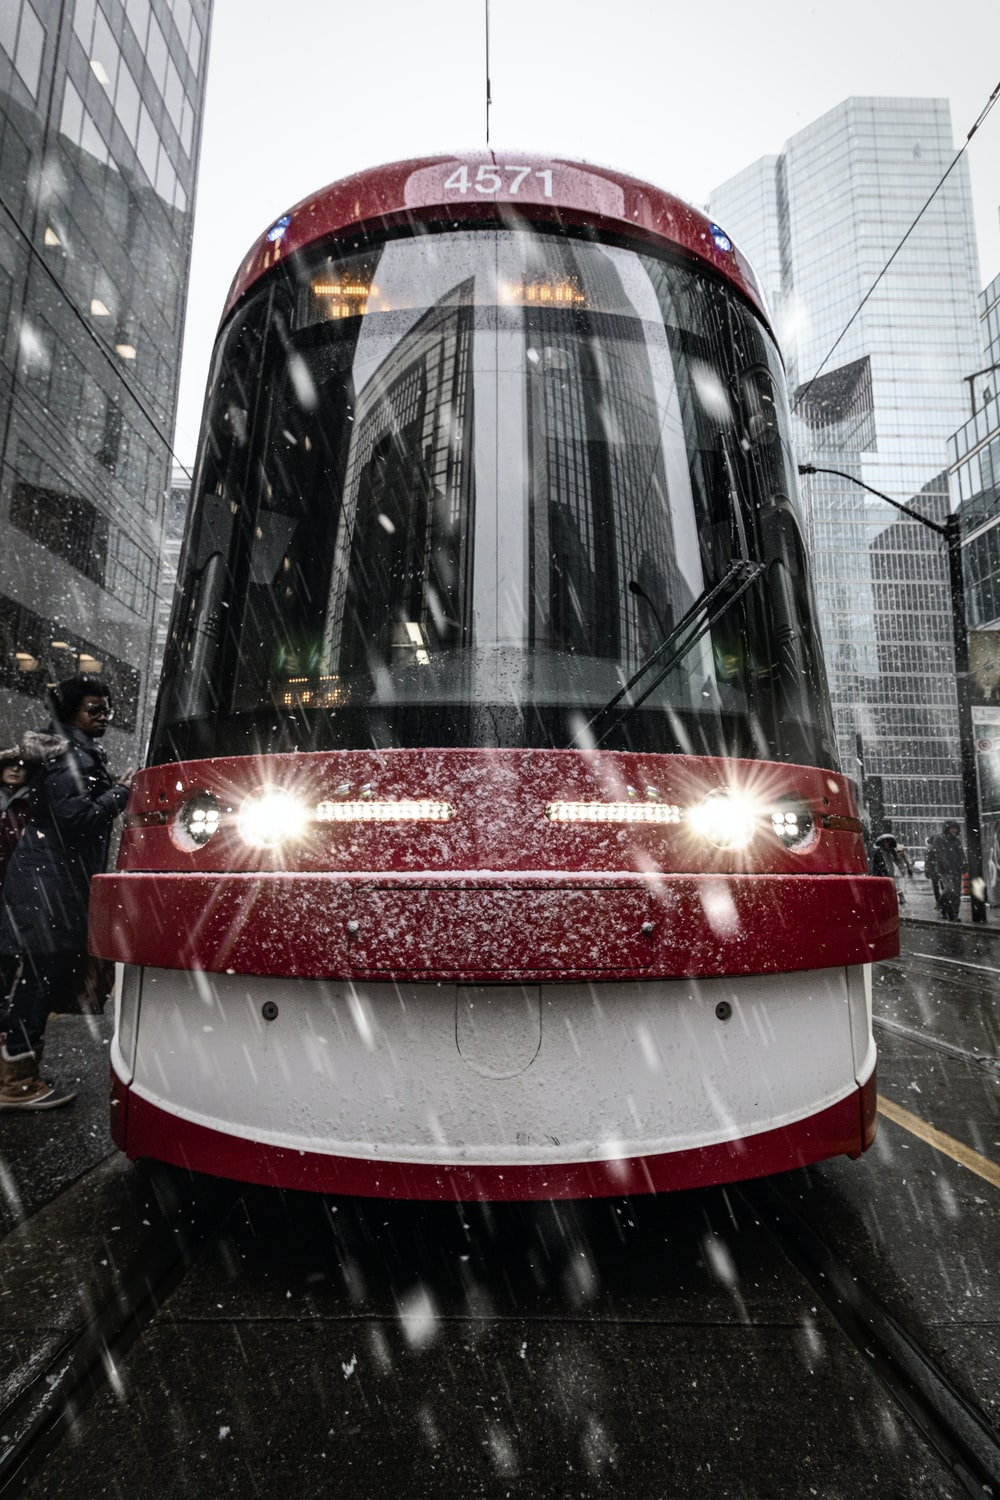 red and white train on the street